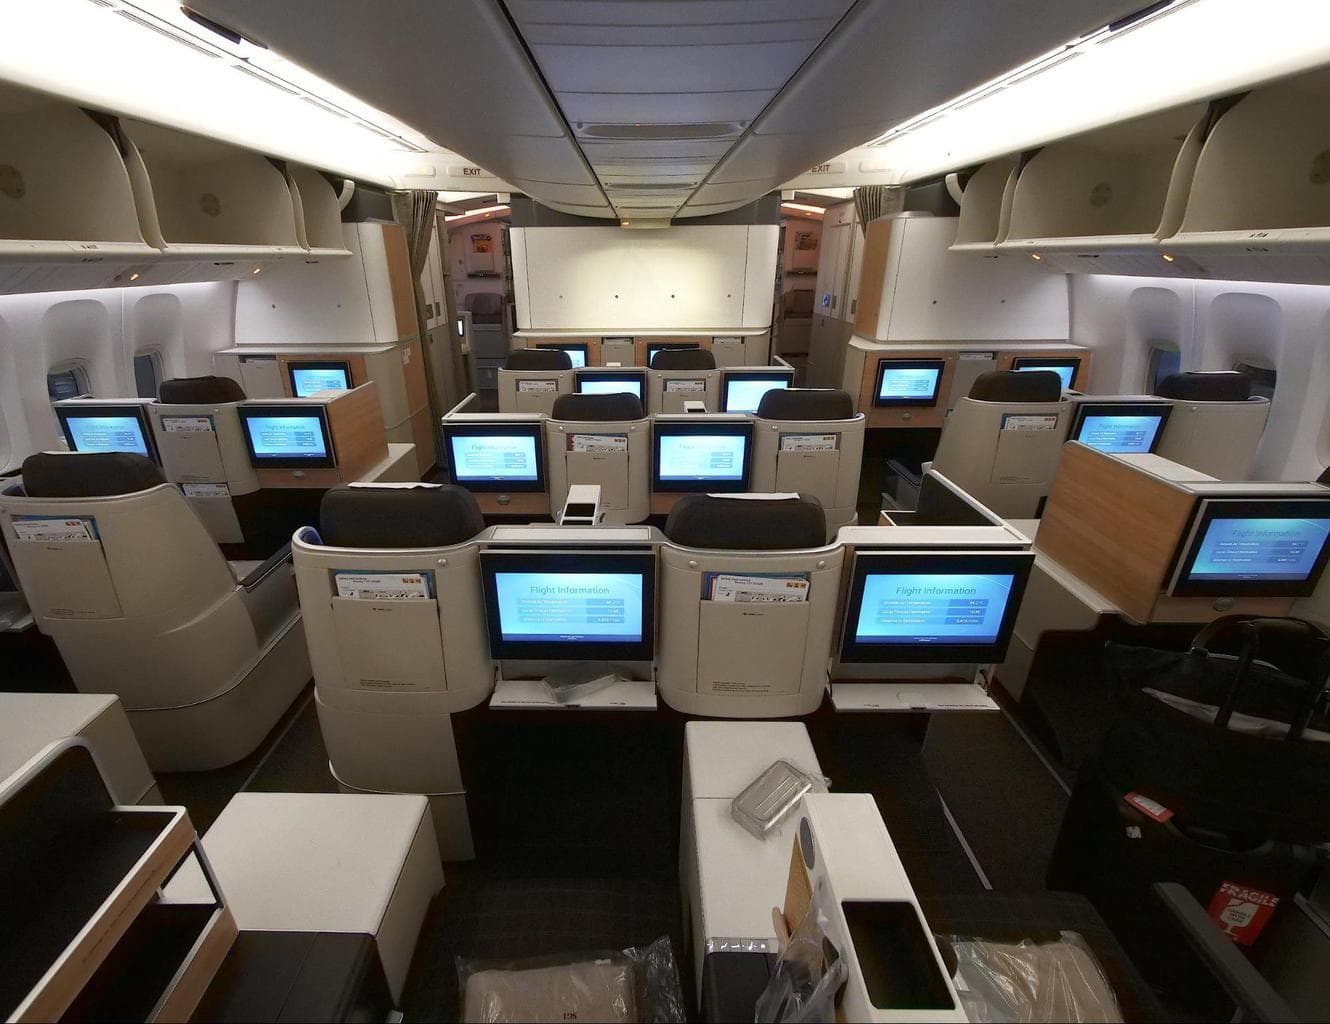 Second cabin on B777 Business Class with Swiss